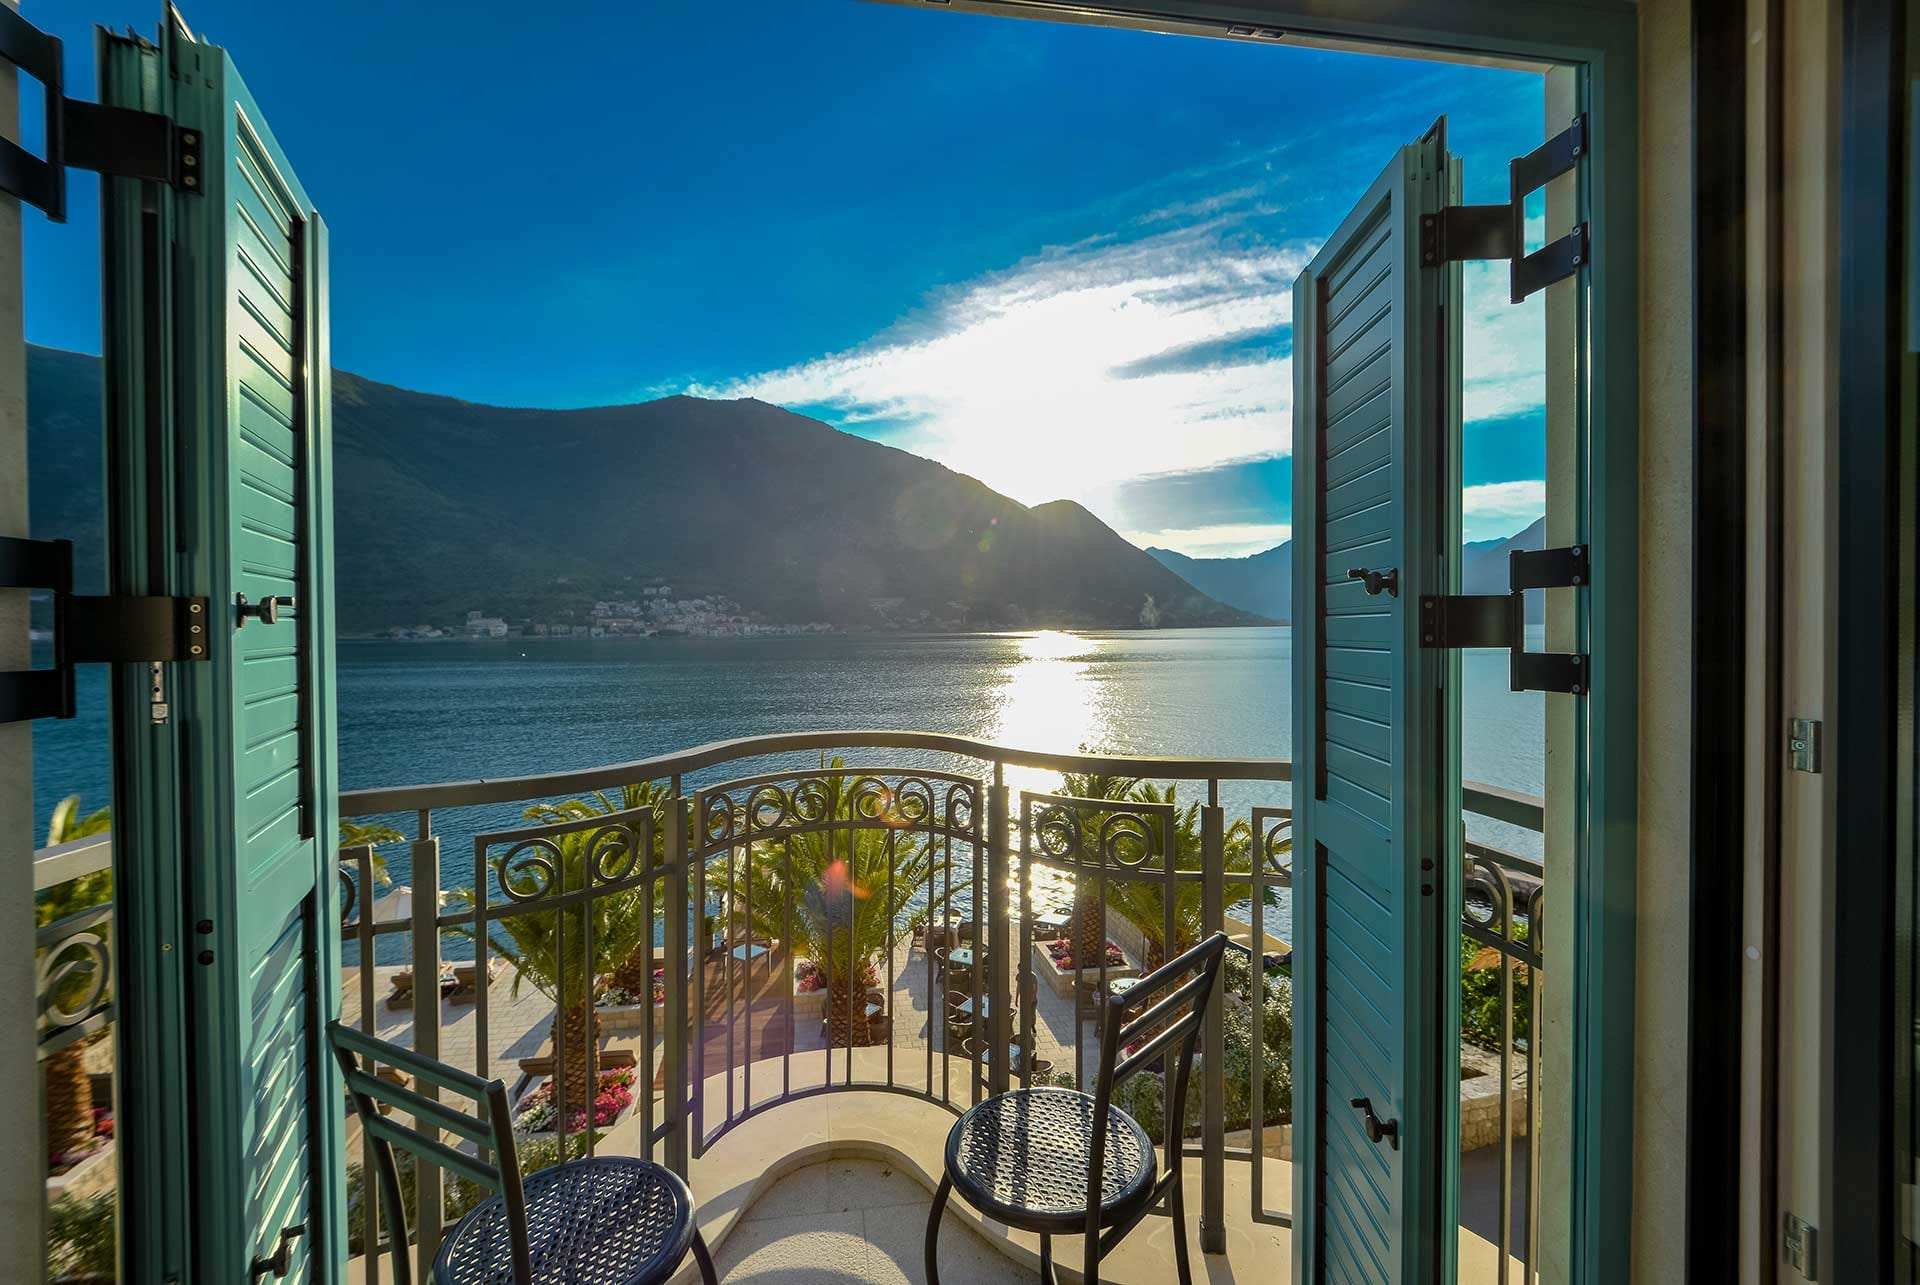 View of Kotor Bay from the Venetian style balcony at Forza Terra hotel, Montenegro